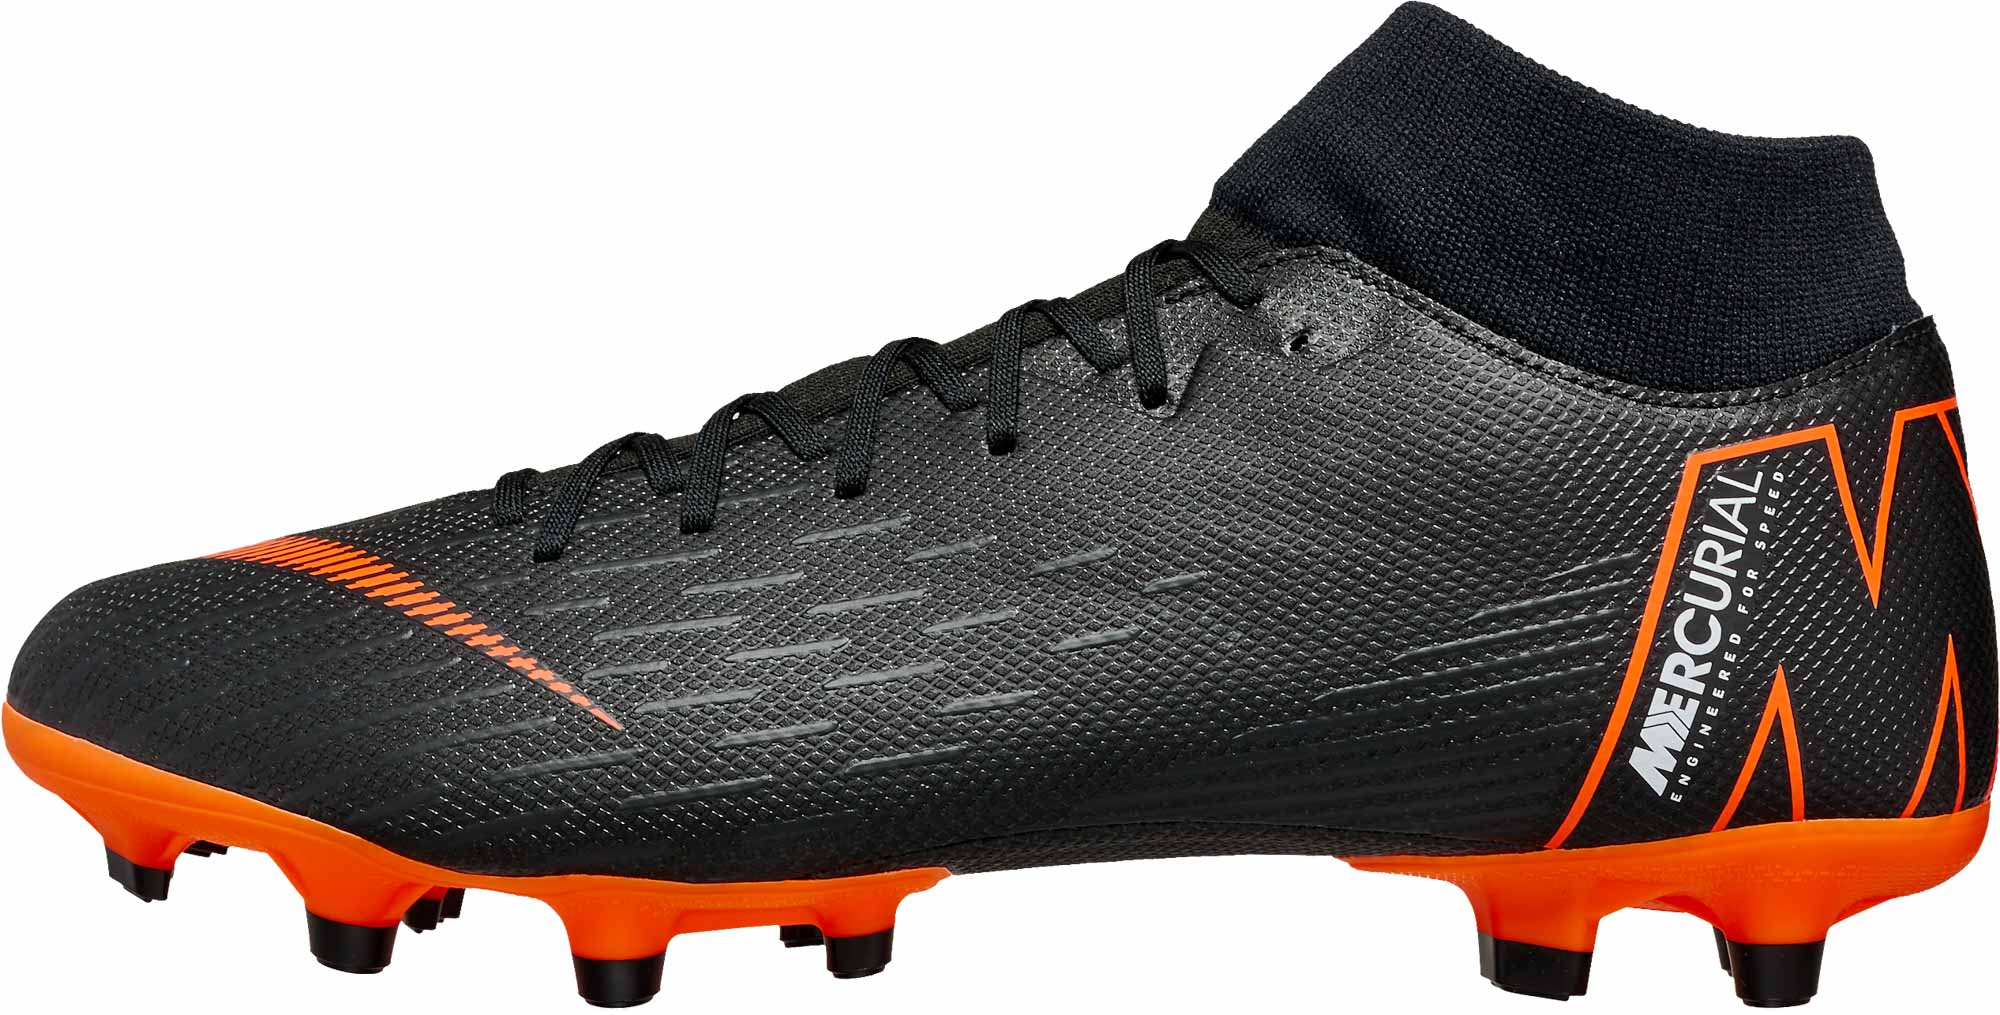 Soccer Shoes Clearance Sale